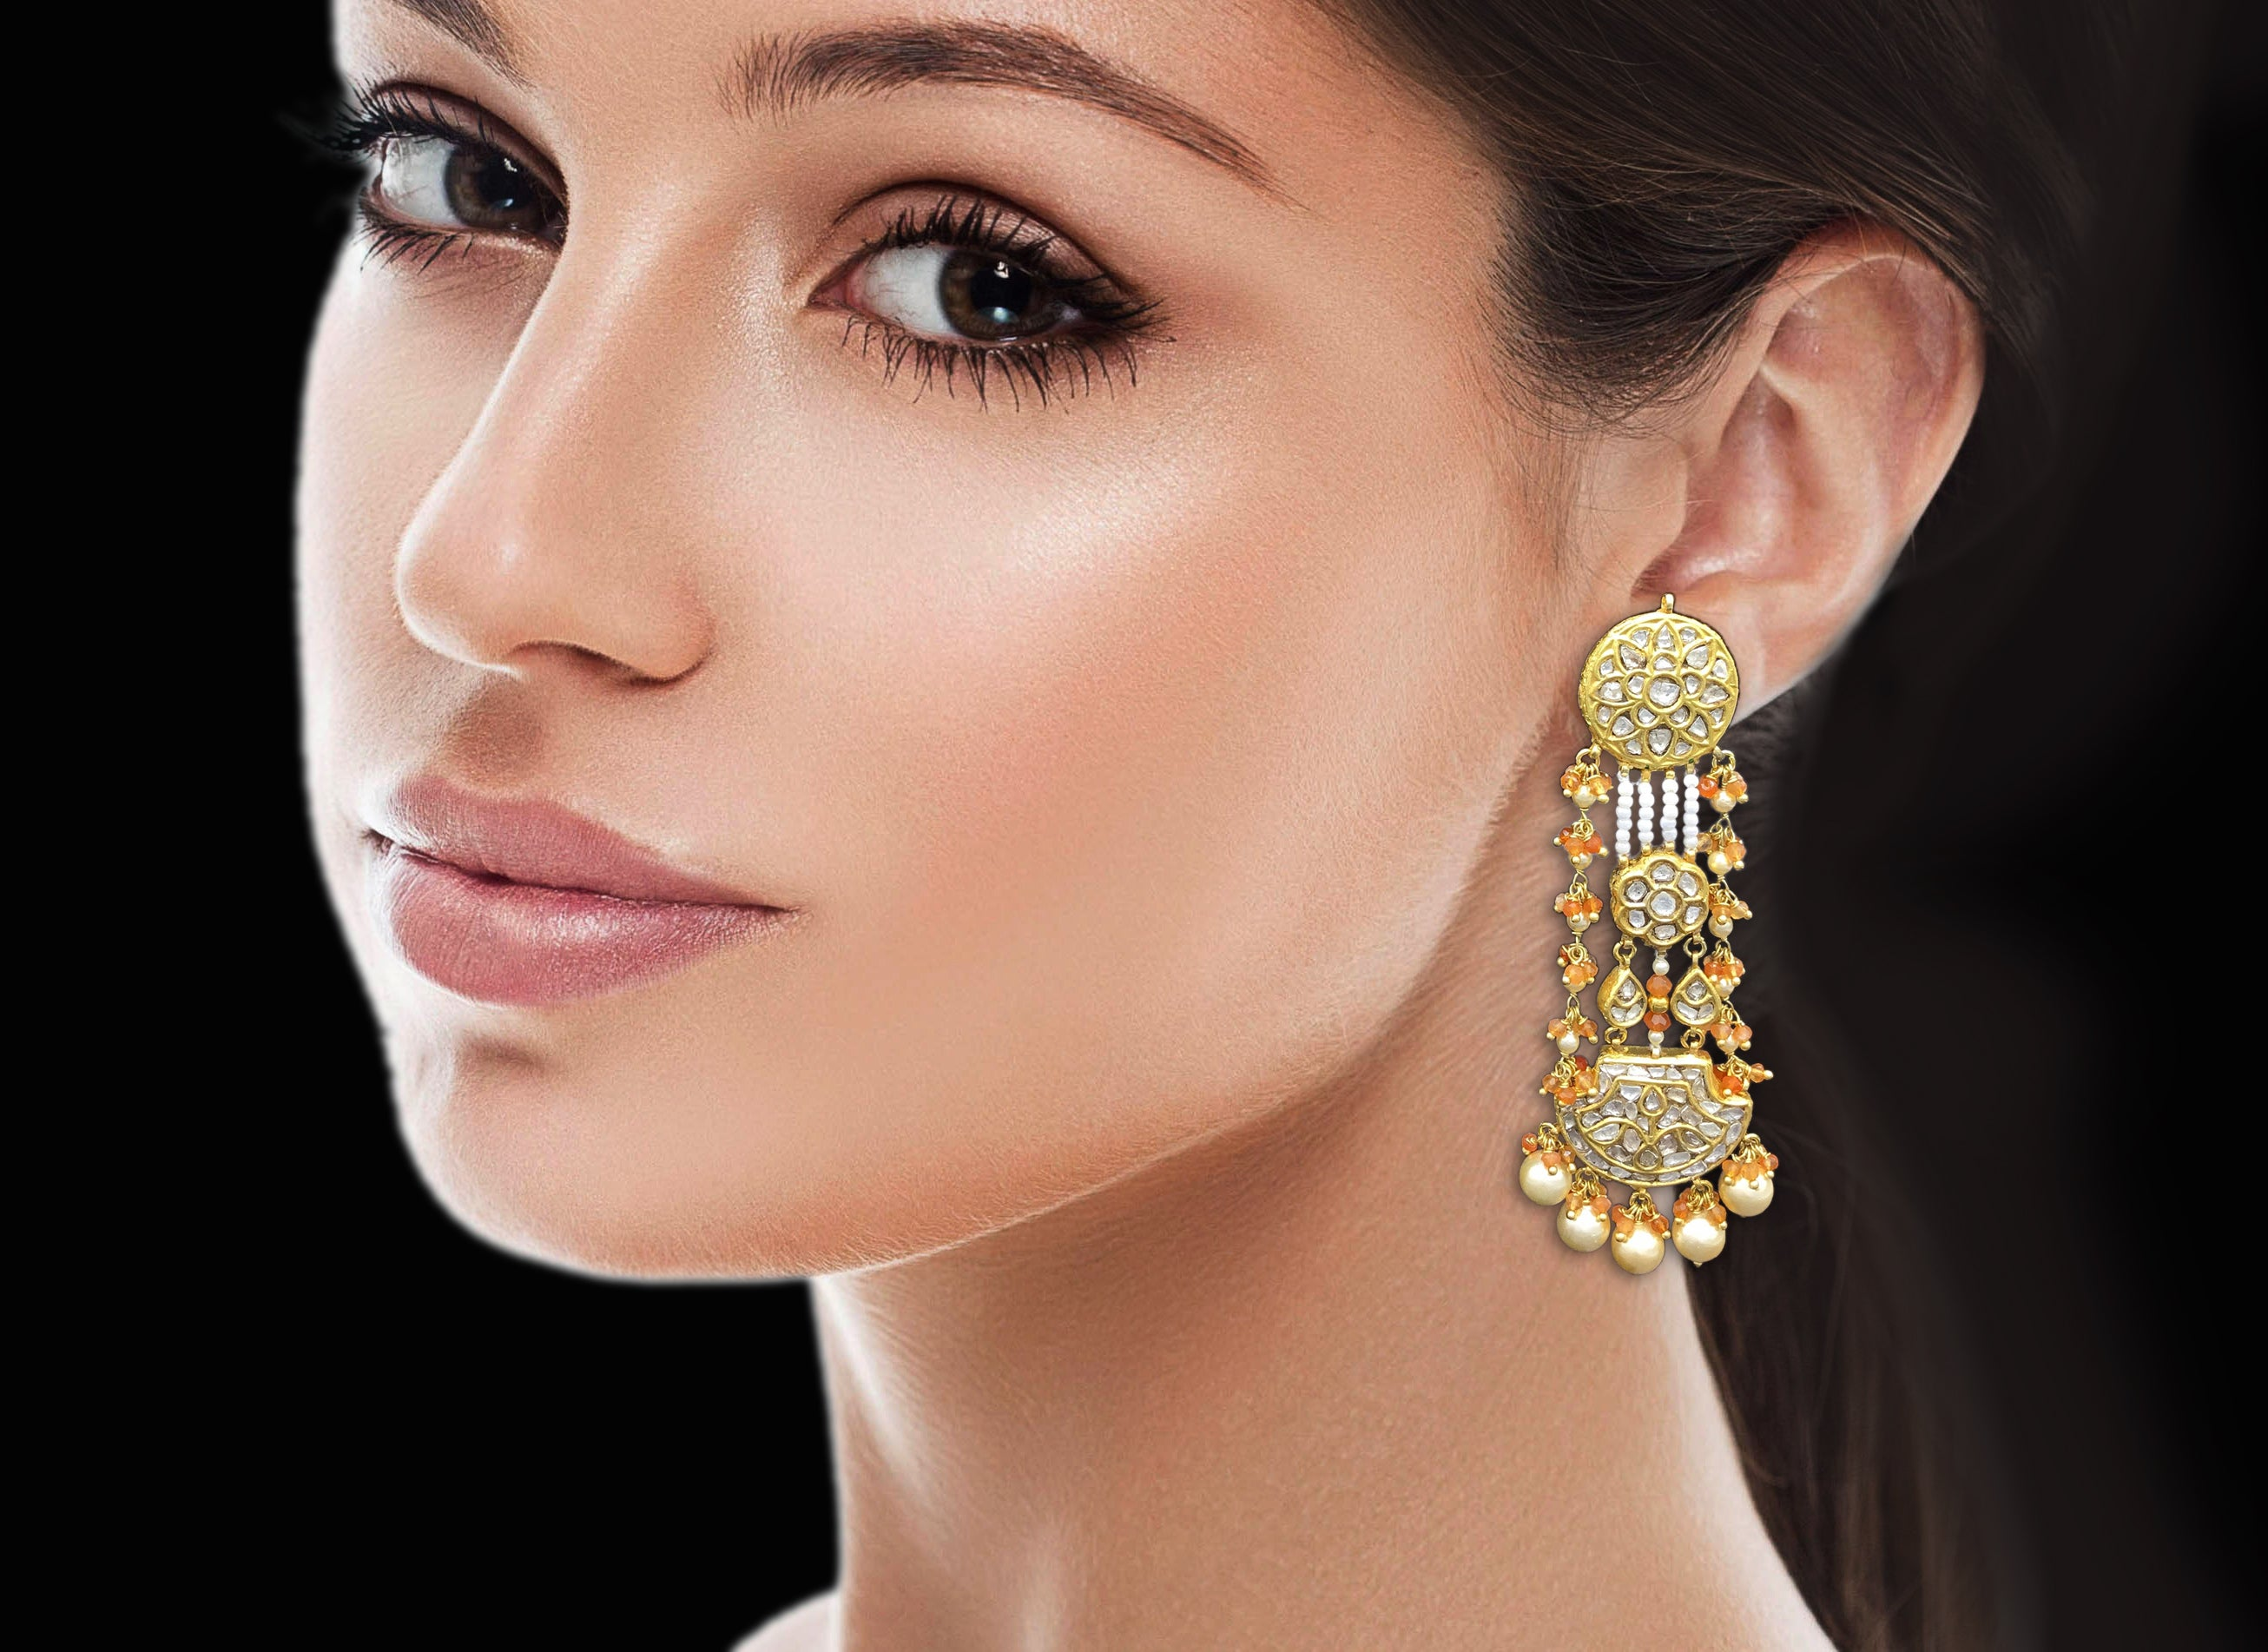 23k Gold and Diamond Polki pankhi (fan) Long Earring Pair with orange carnelians and natural freshwater pearls